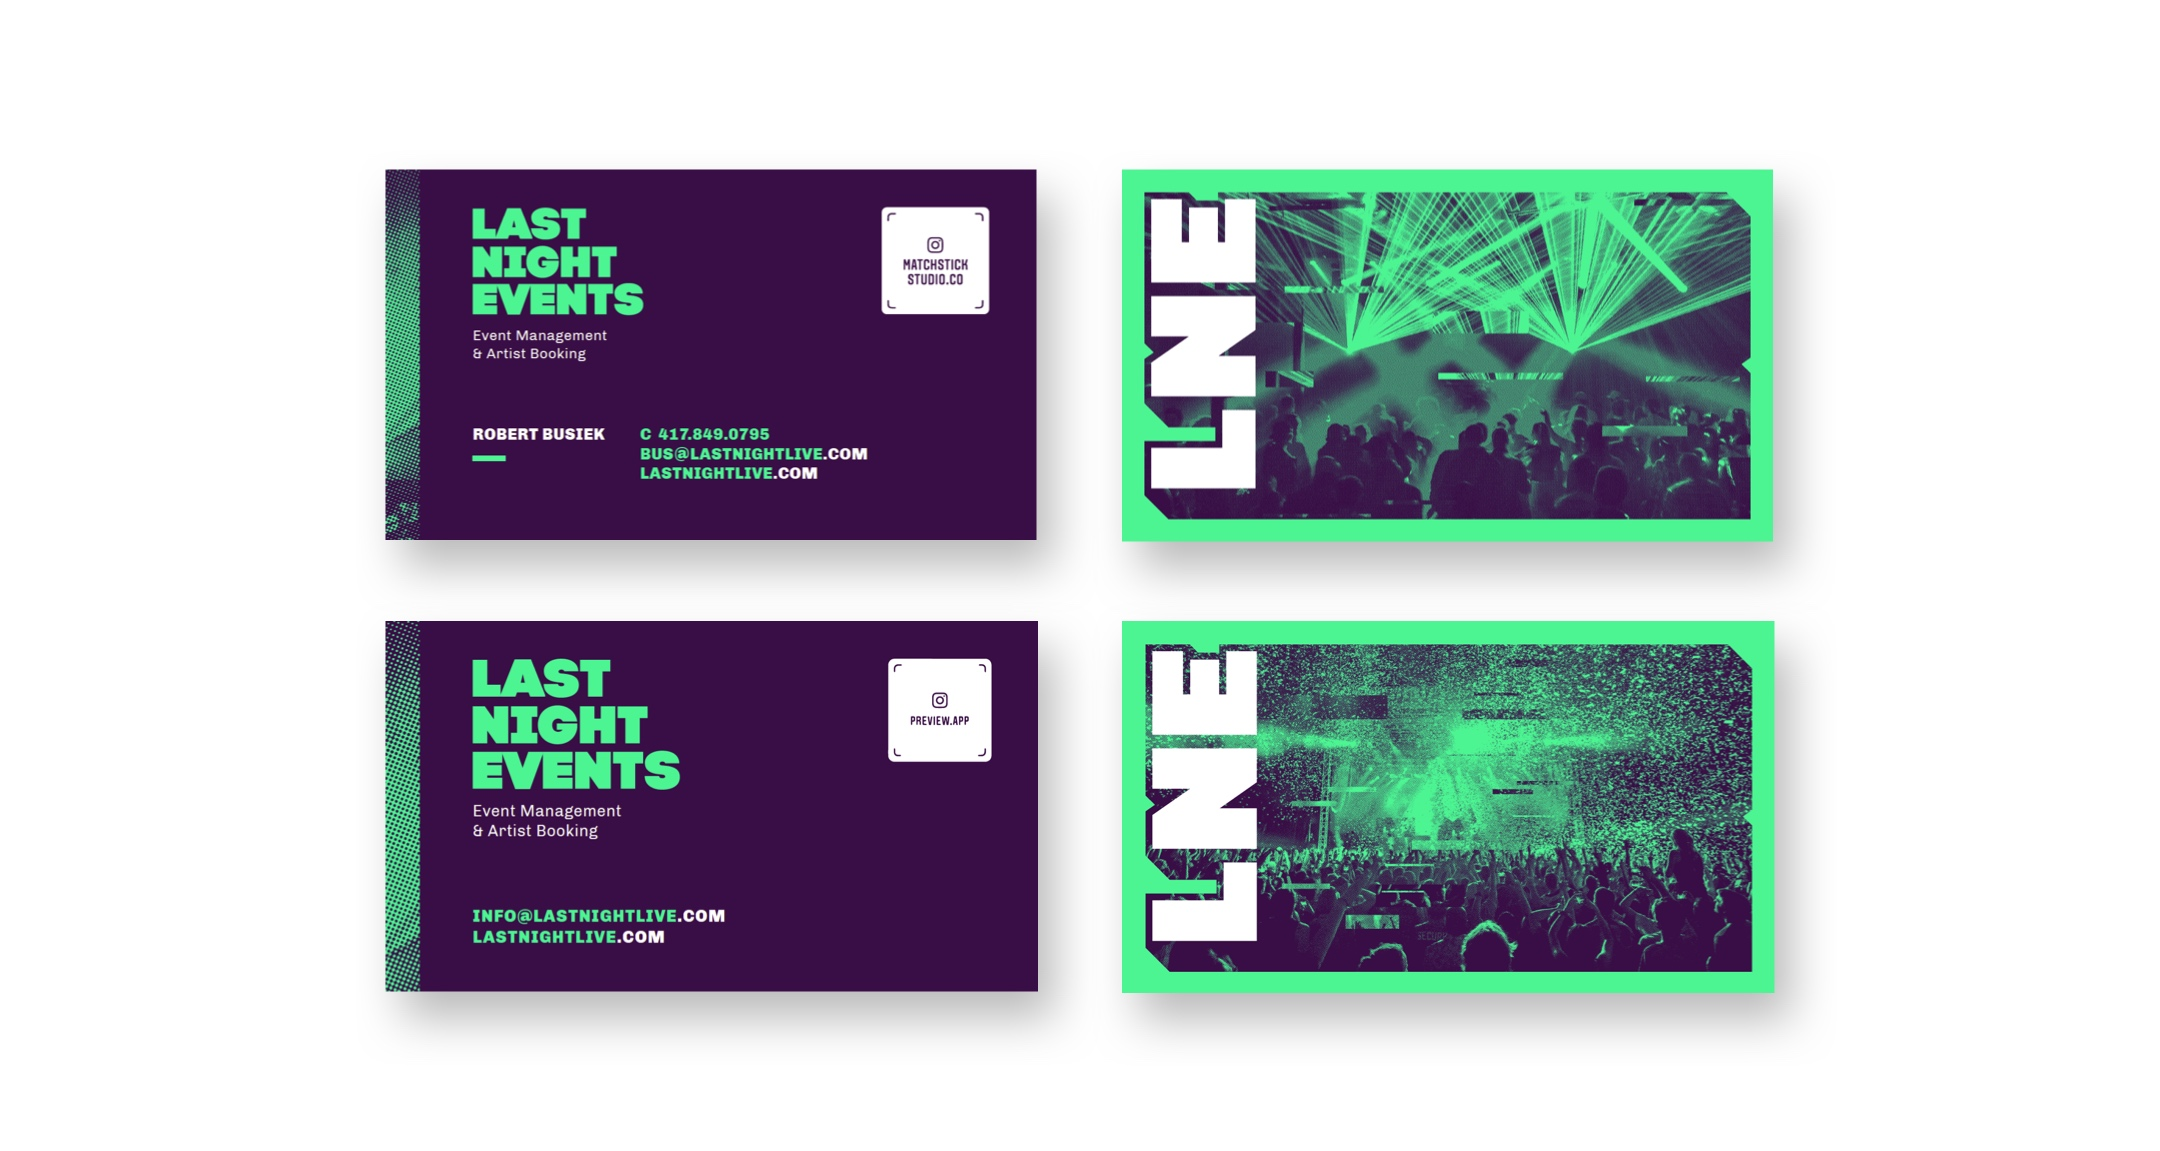 last night events business cards